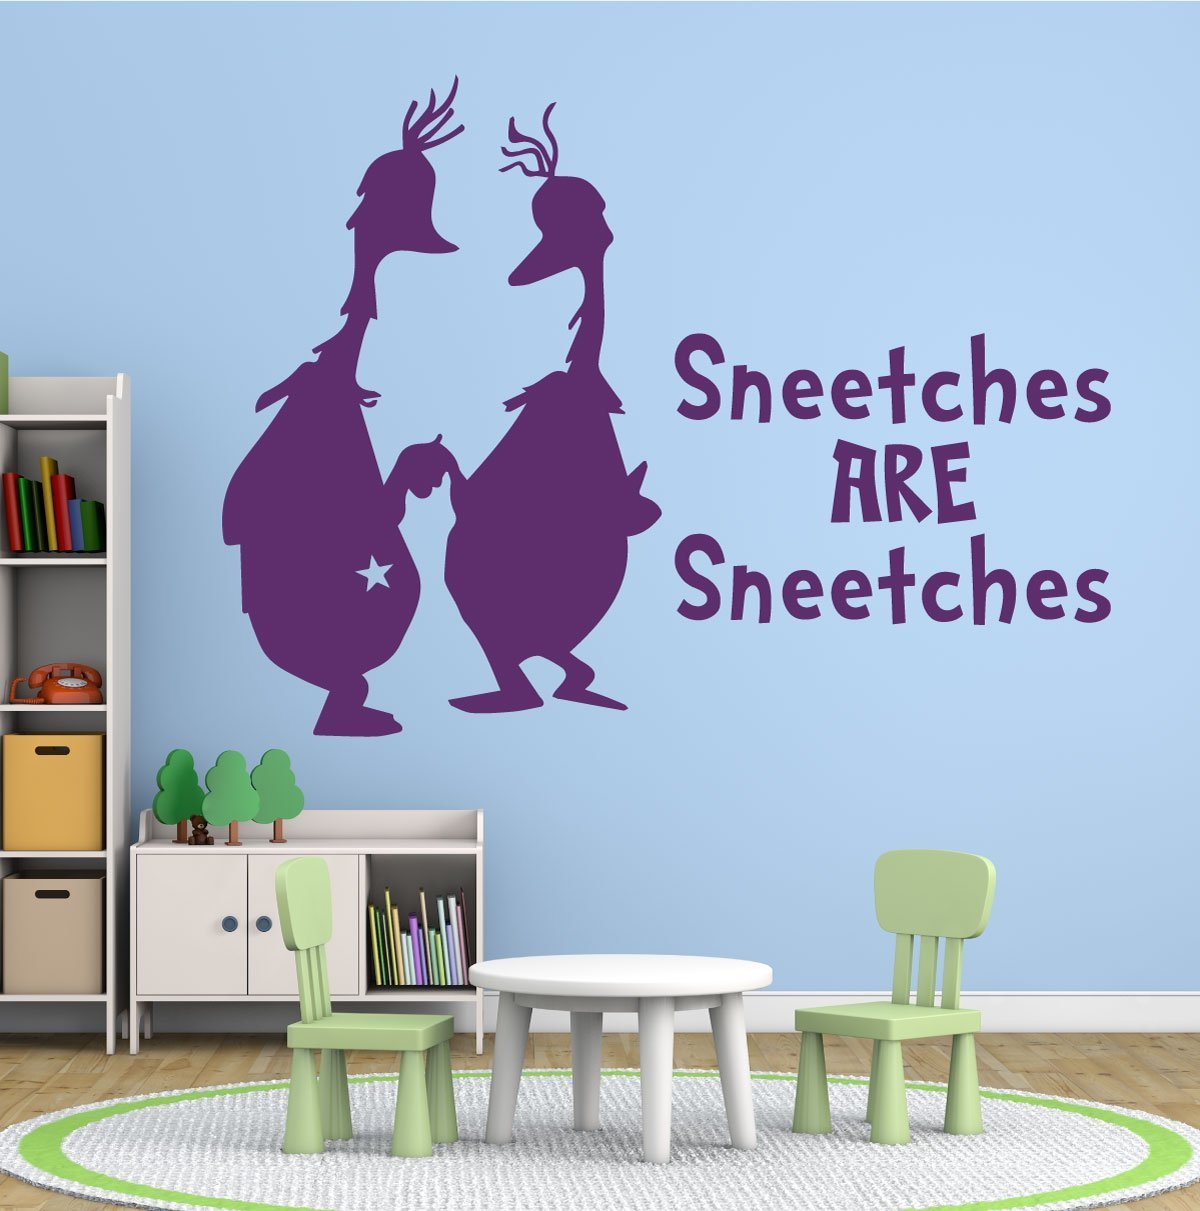 Dr seuss wall decals sneetches are sneetches for Kitchen colors with white cabinets with dr seuss wall art decor